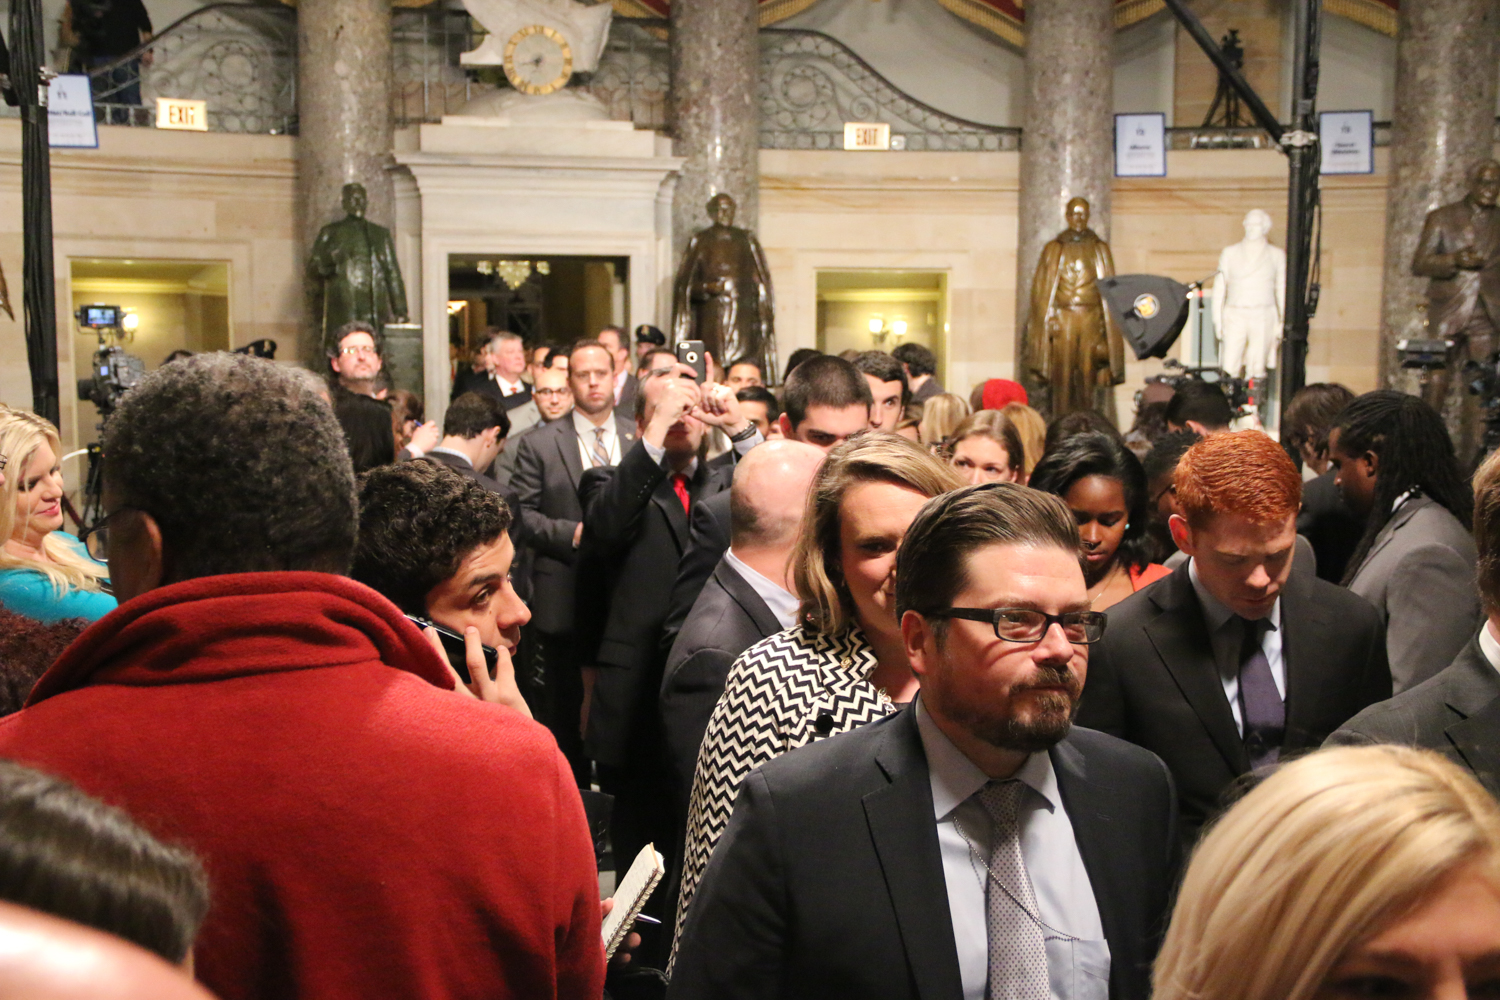 The remaining members of Congress and their staff line up in Statuary Hall while they wait to enter the House Chamber.